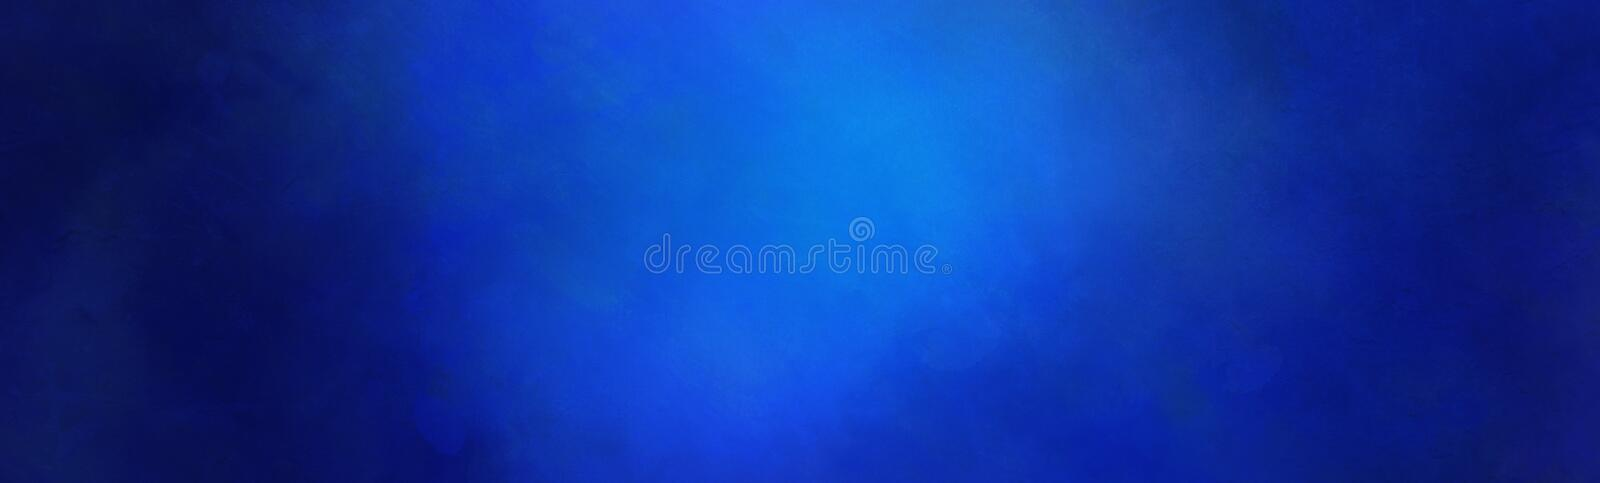 Blue texture background with spotlight or soft shining light with dark border grunge in textured vintage wall illustration royalty free stock photo